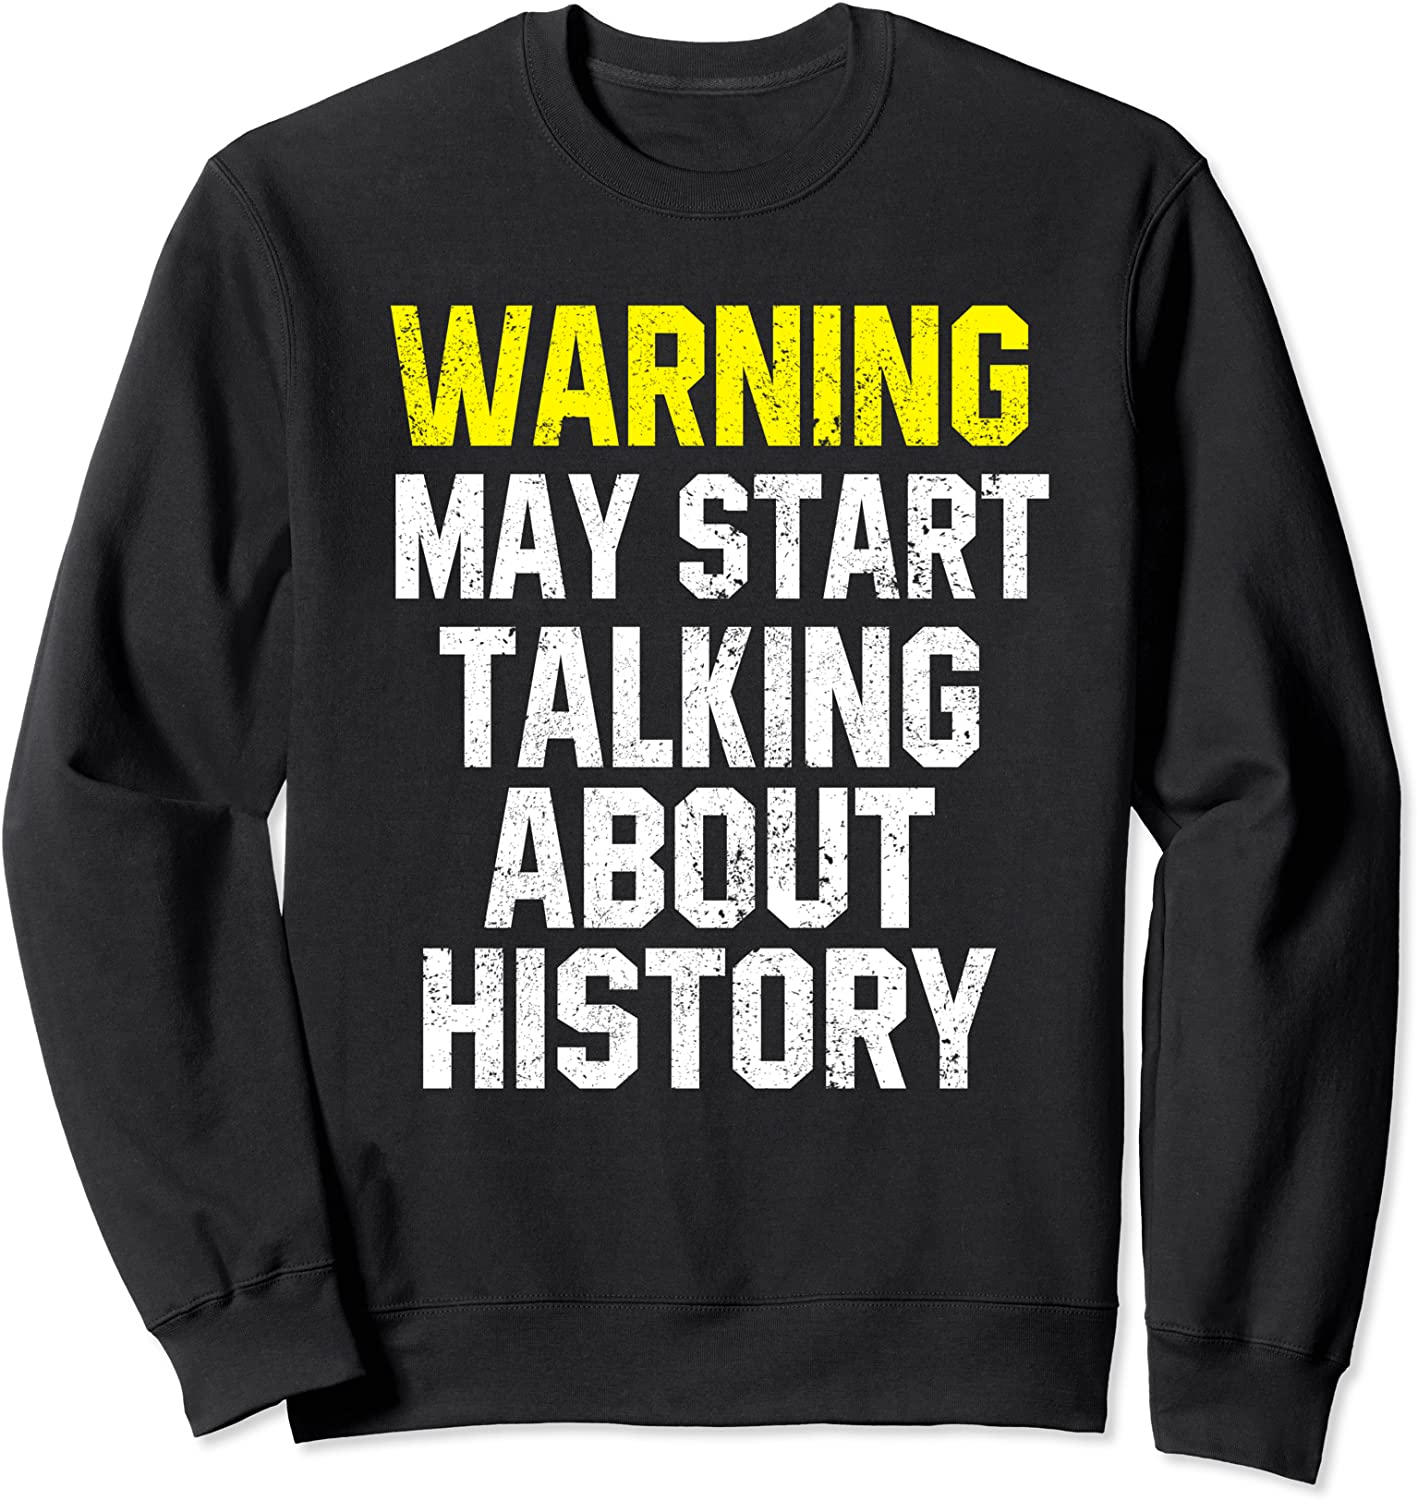 Warning May Start latest Talking About Discount is also underway Funny History Lover Swea